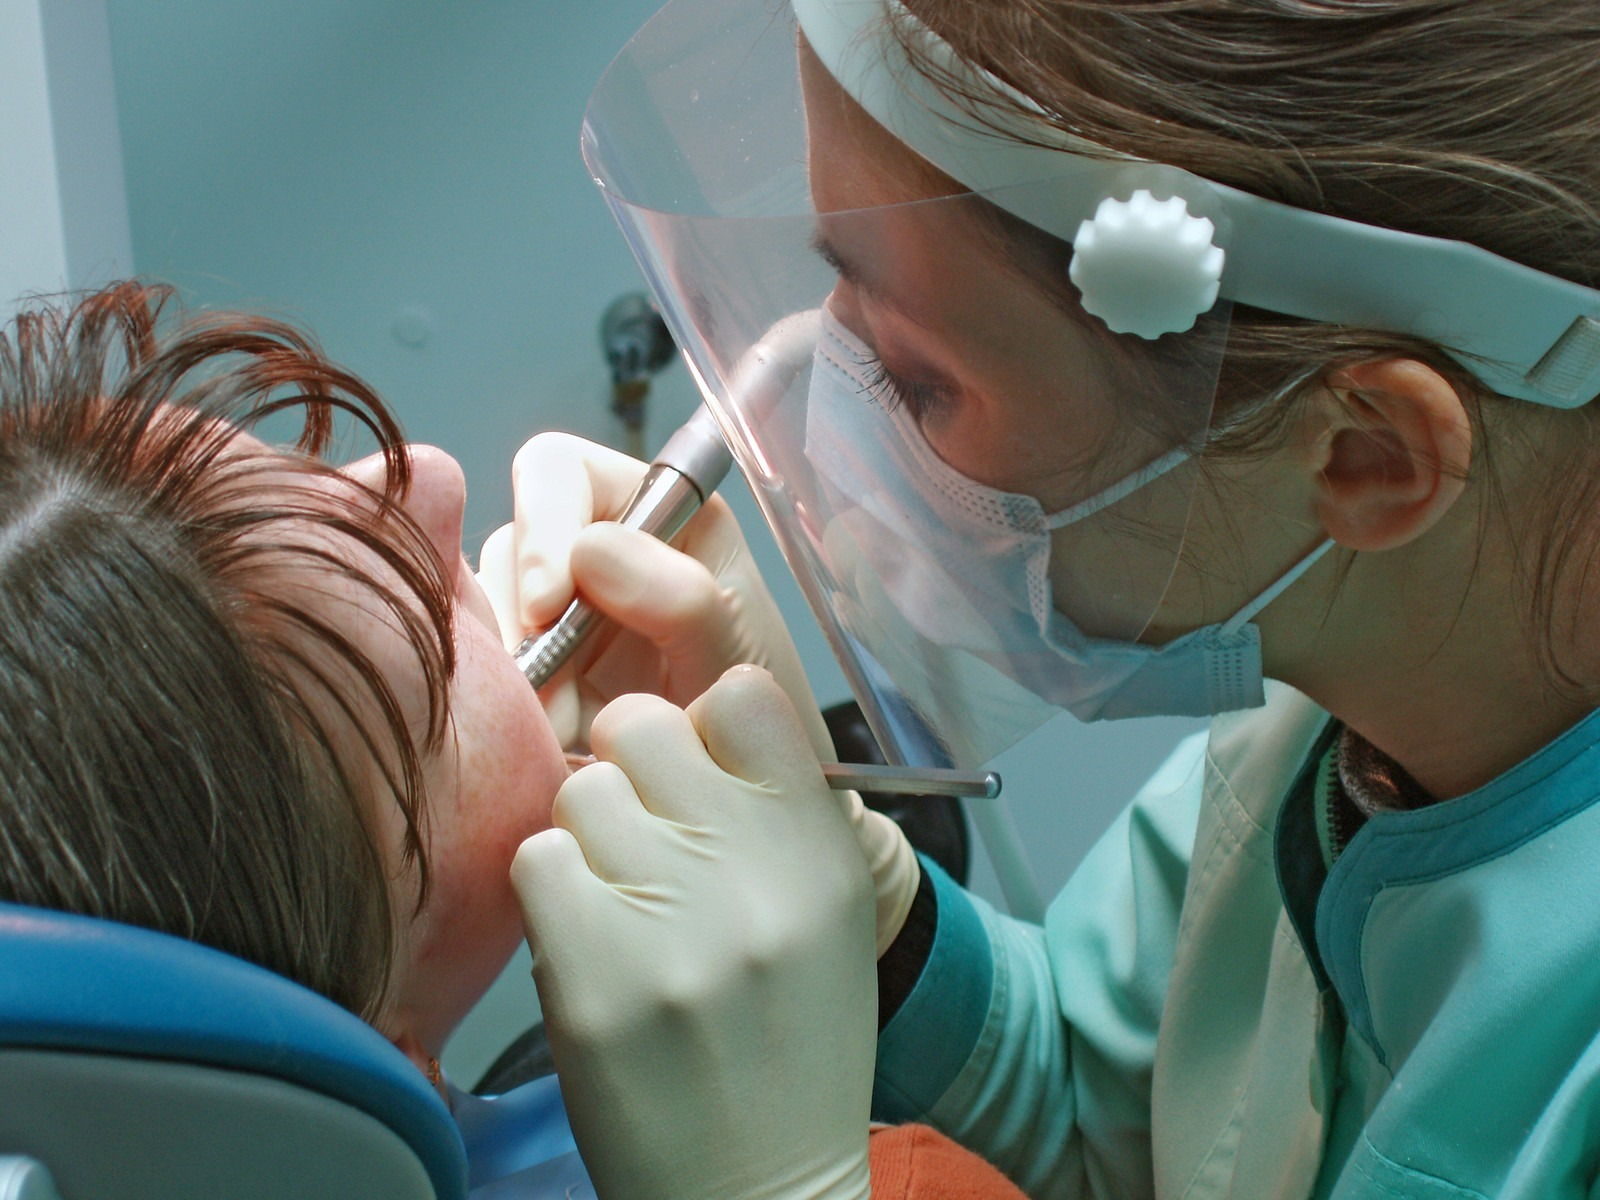 follow-these-tips-to-heal-after-a-root-canal